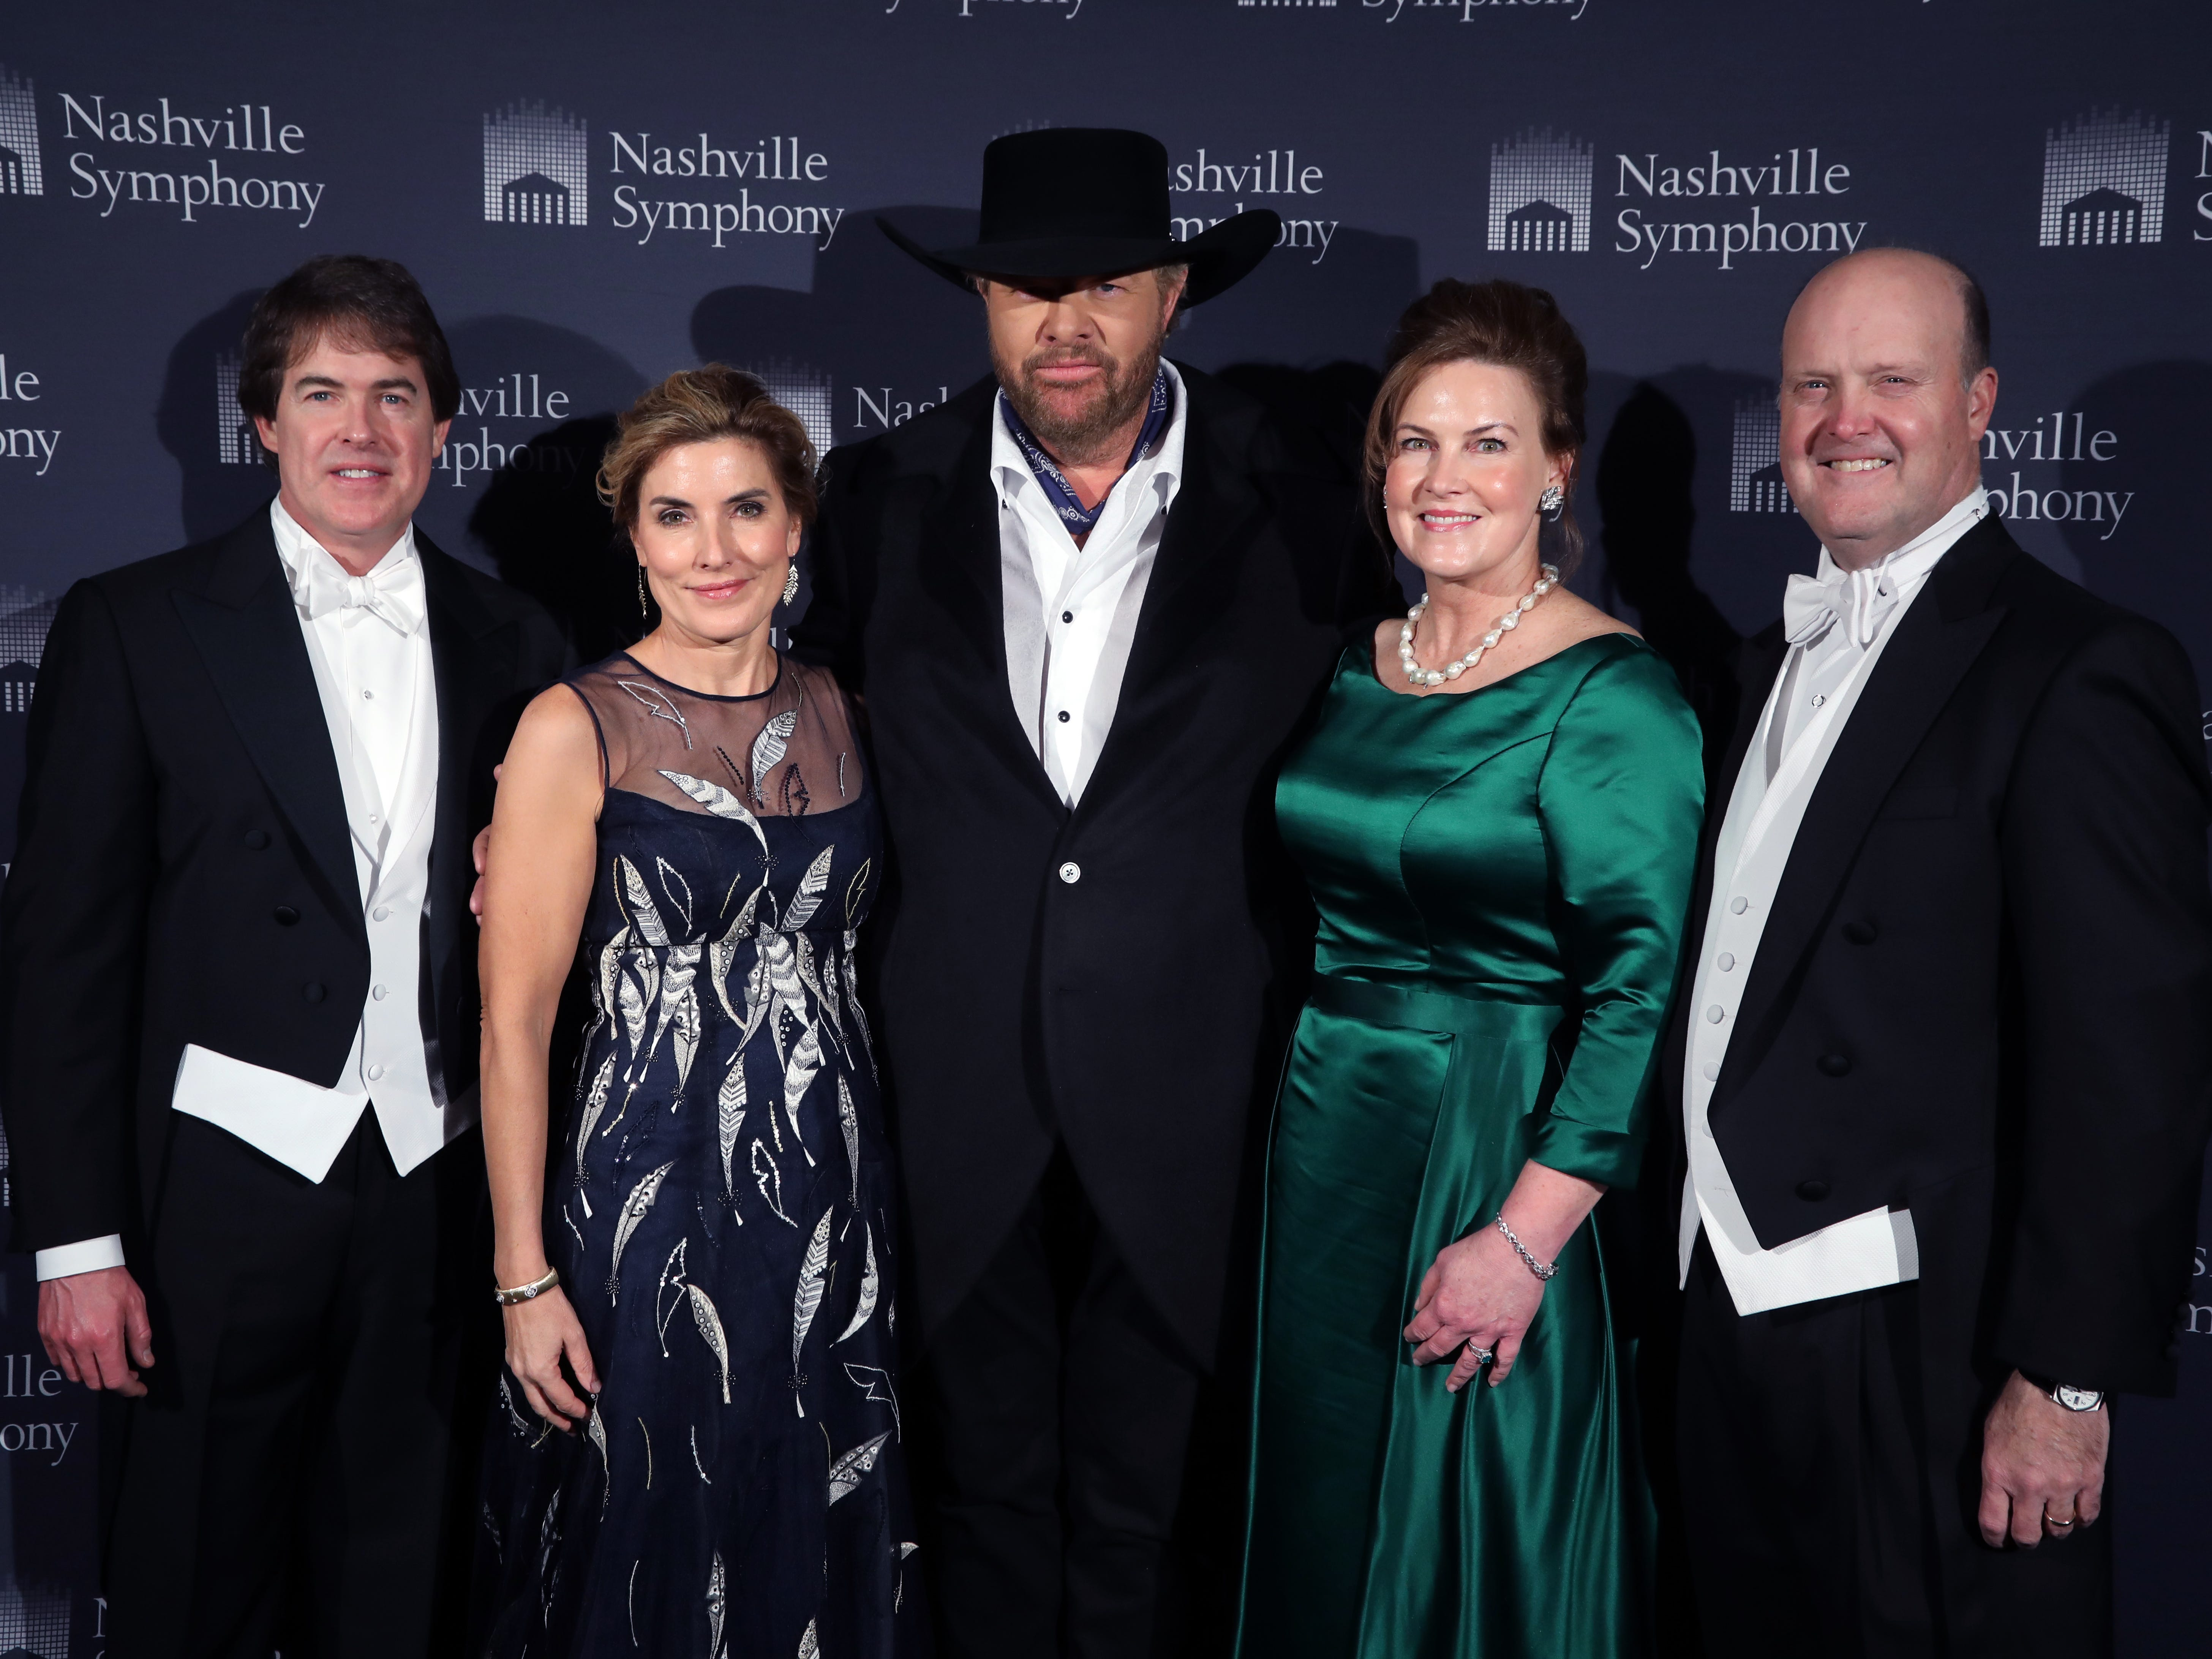 Kevin and Katie Crumbo, Toby Keith, Laurie and Jim Seabury at the 34th annual Symphony Ball on Saturday, December 8, 2018, at Schermerhorn Symphony Center.